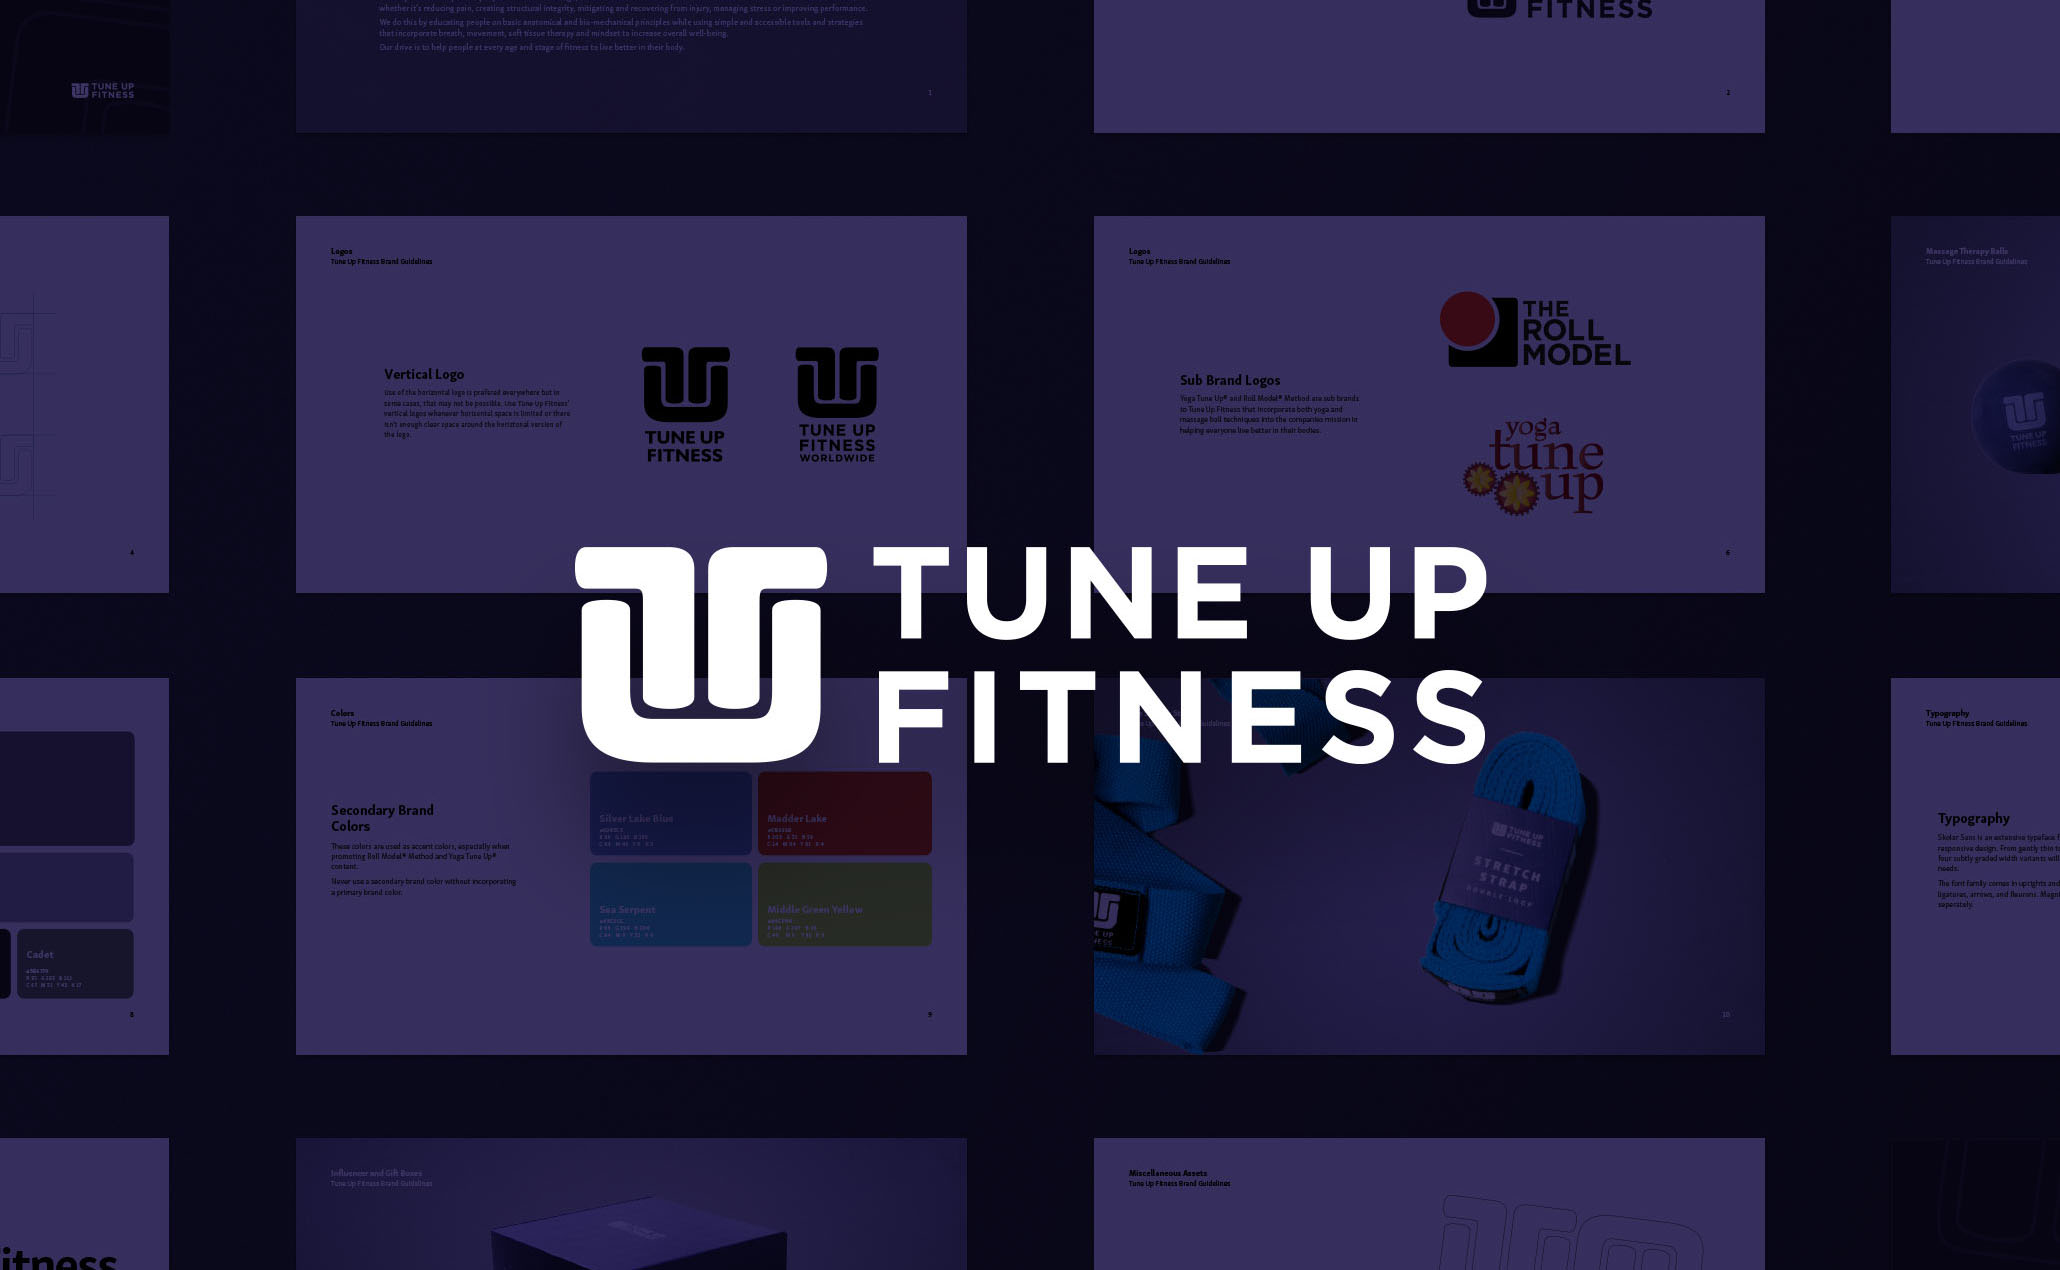 Tune Up Fitness